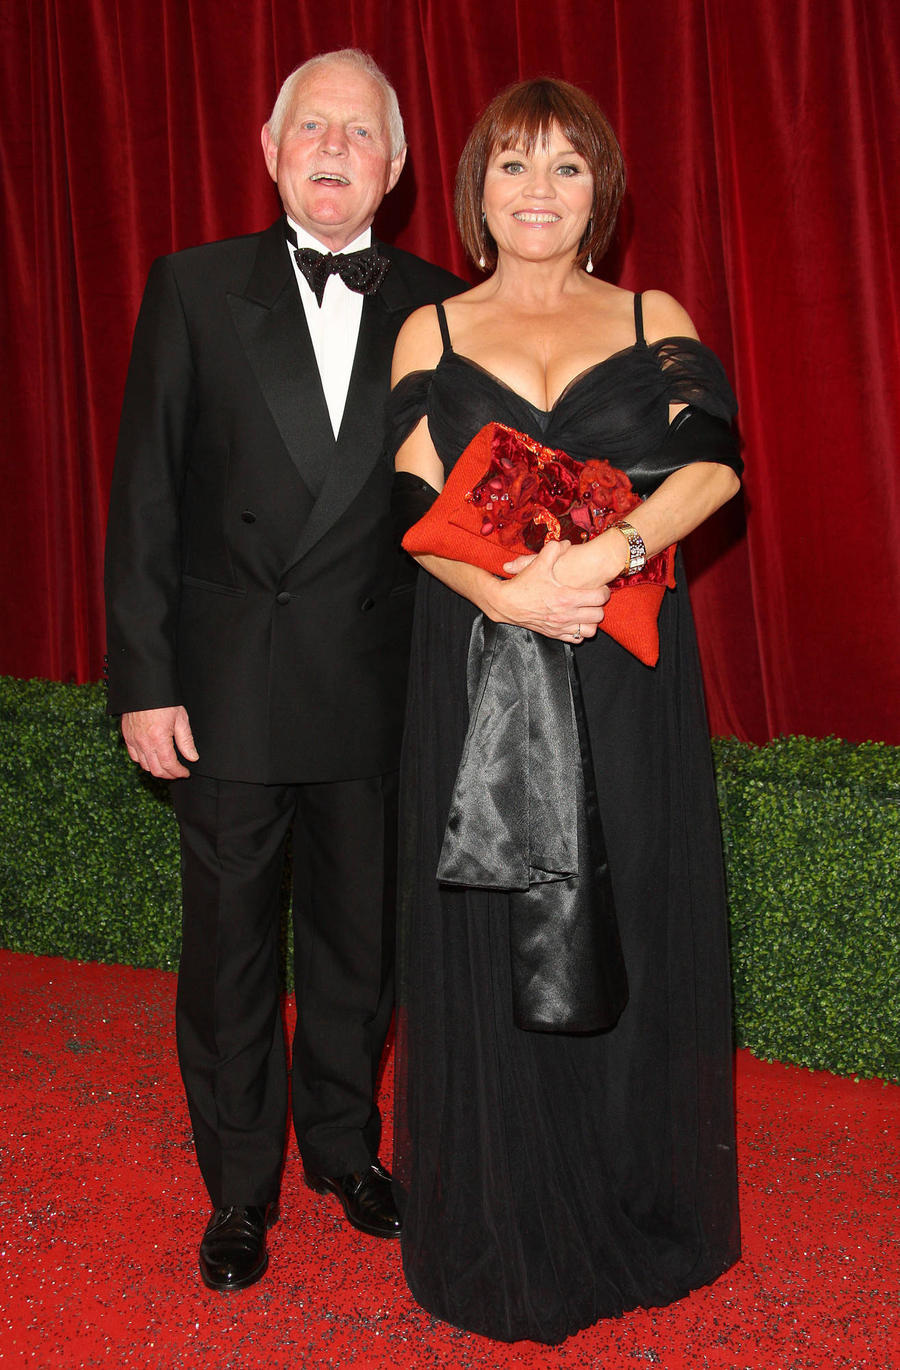 British Soap Stars Chris Chittell & Lesley Dunlop Wed